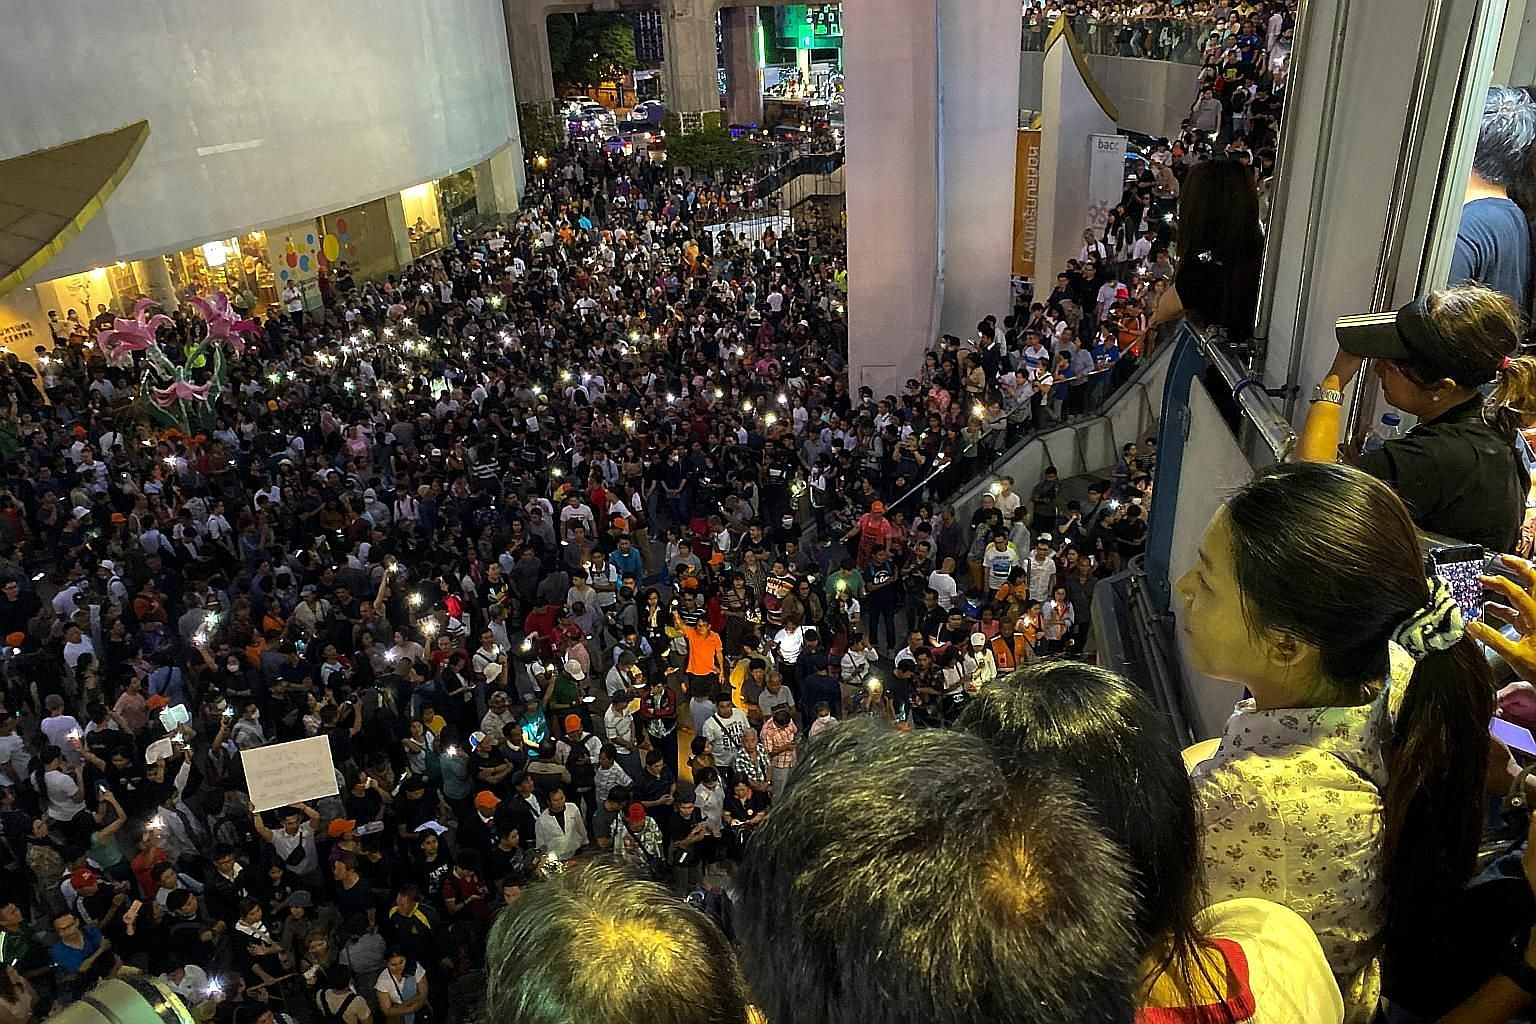 """First-timers joined veterans of Bangkok's turbulent decades of street protests last Saturday, as thousands rallied in the Thai capital in the biggest demonstration since a 2014 coup. The protest was called just a day before - as a """"flash mob"""" - throu"""